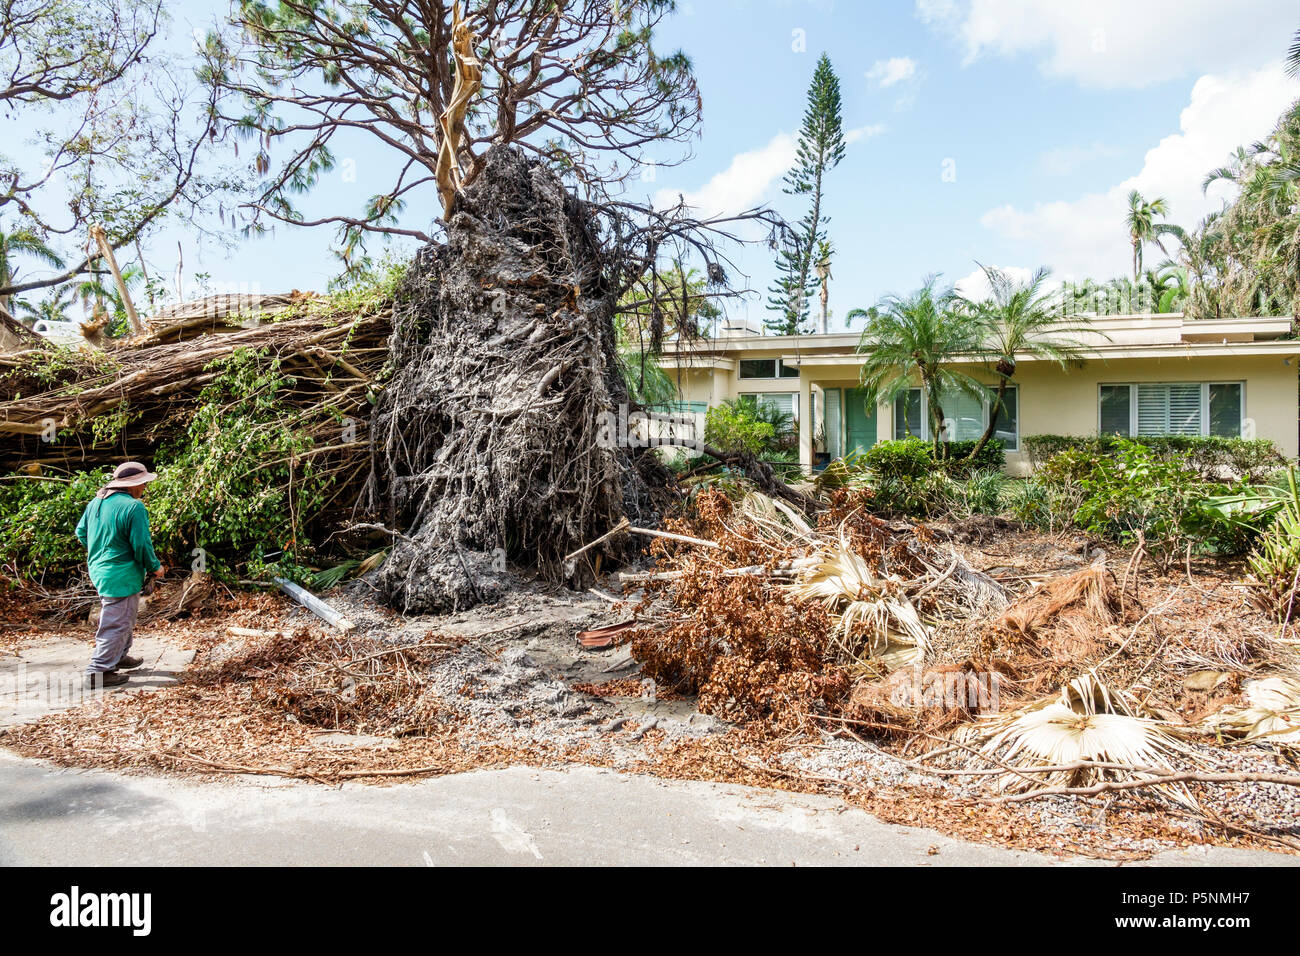 Naples Florida Crayton Road Hurricane Irma wind damage destruction aftermath fallen trees bushes branches debris pile storm disaster recovery cleanup Stock Photo